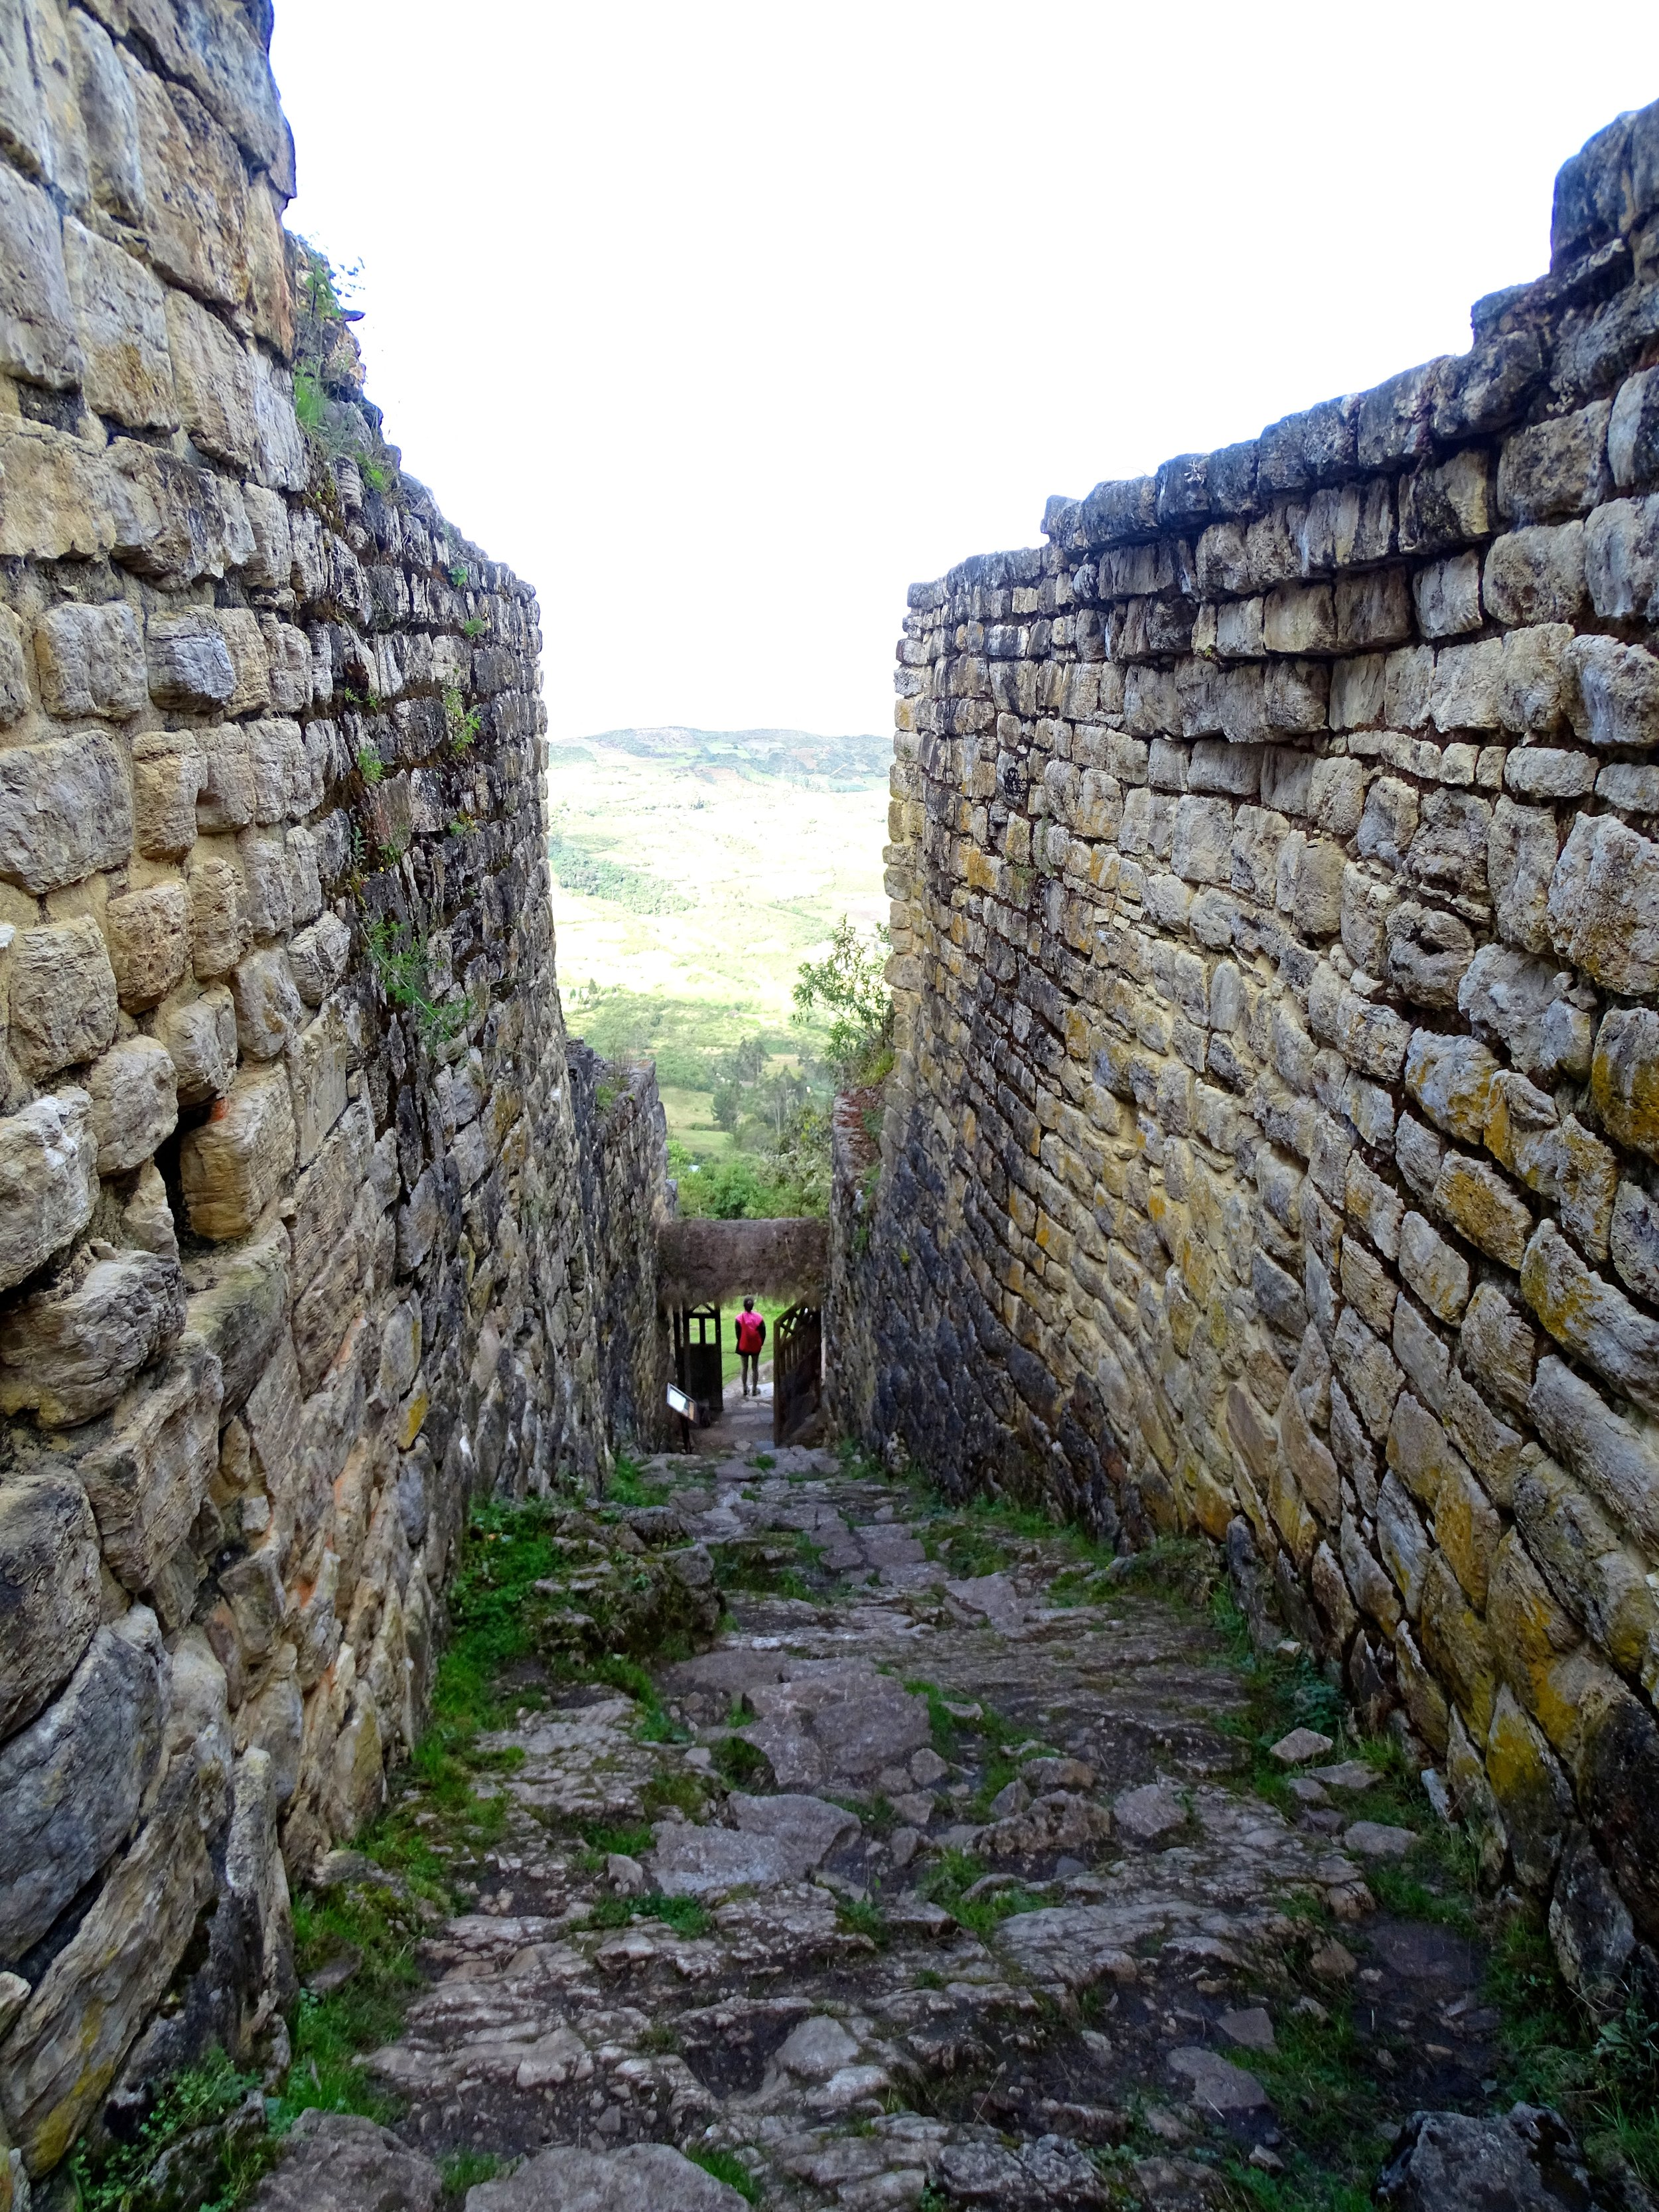 The view down through one of the main entrance passageways.